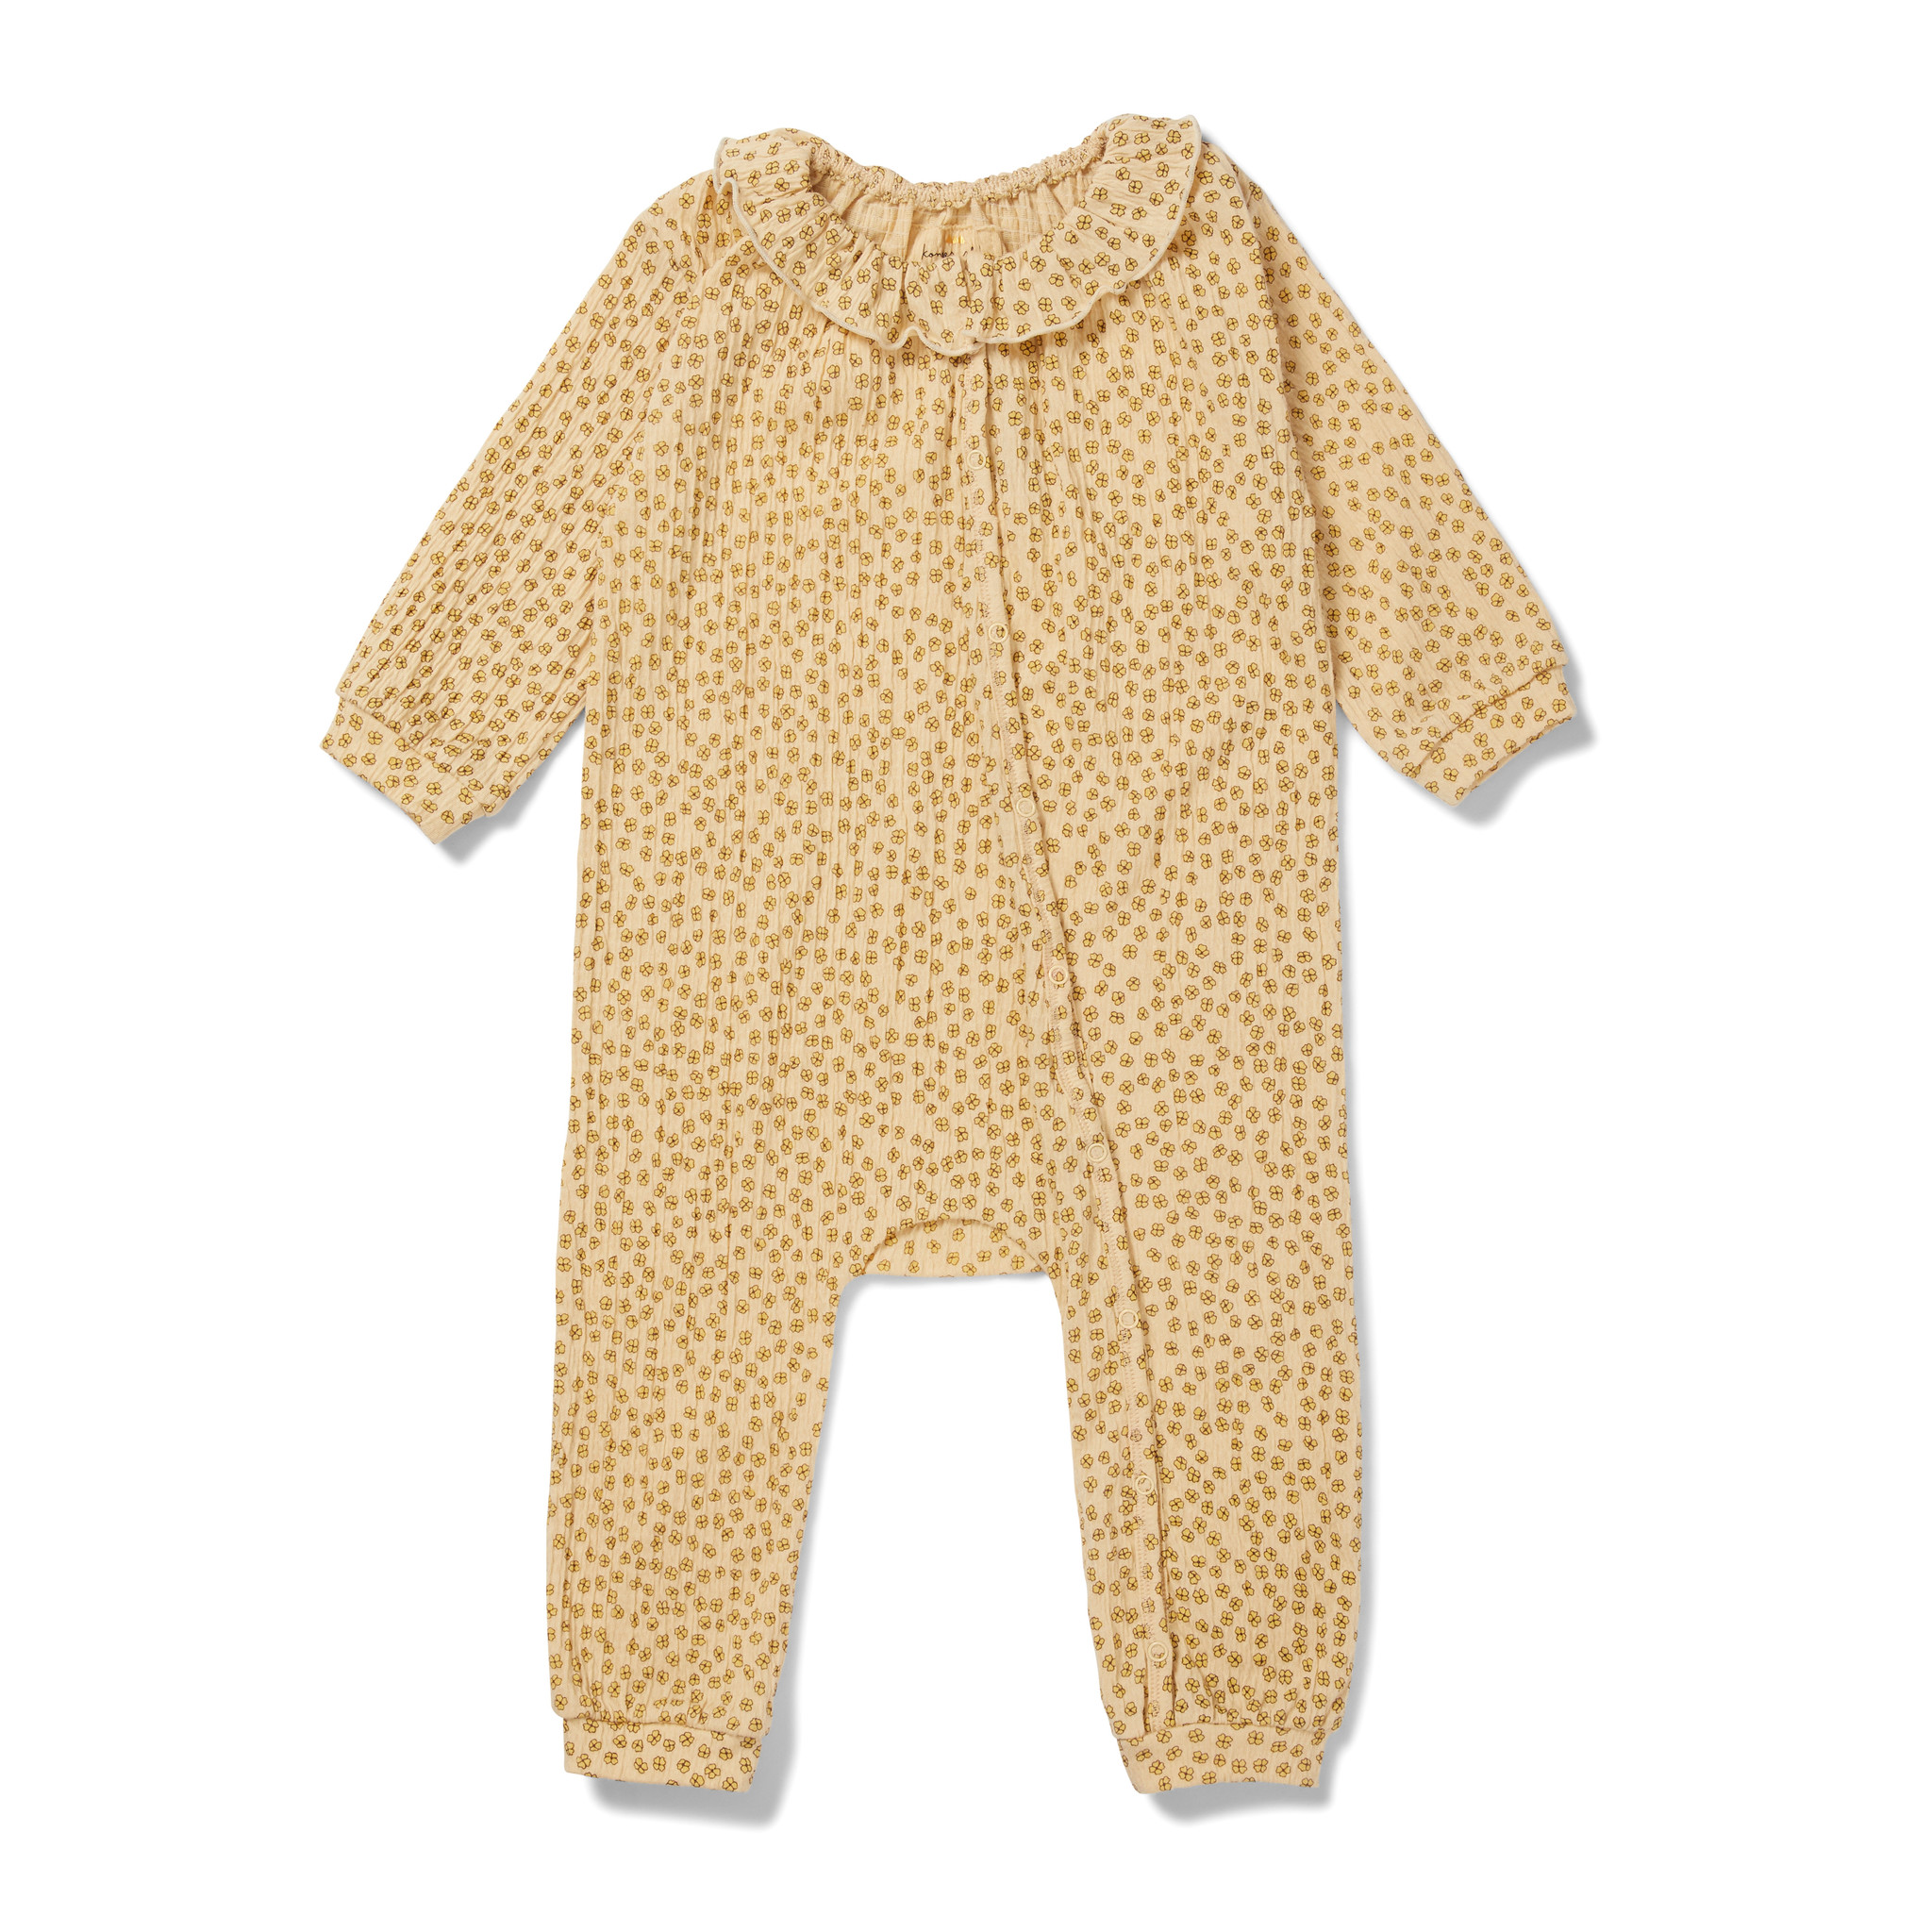 CHLEO ONESIE - BUTTERCUP-YELLOW-1